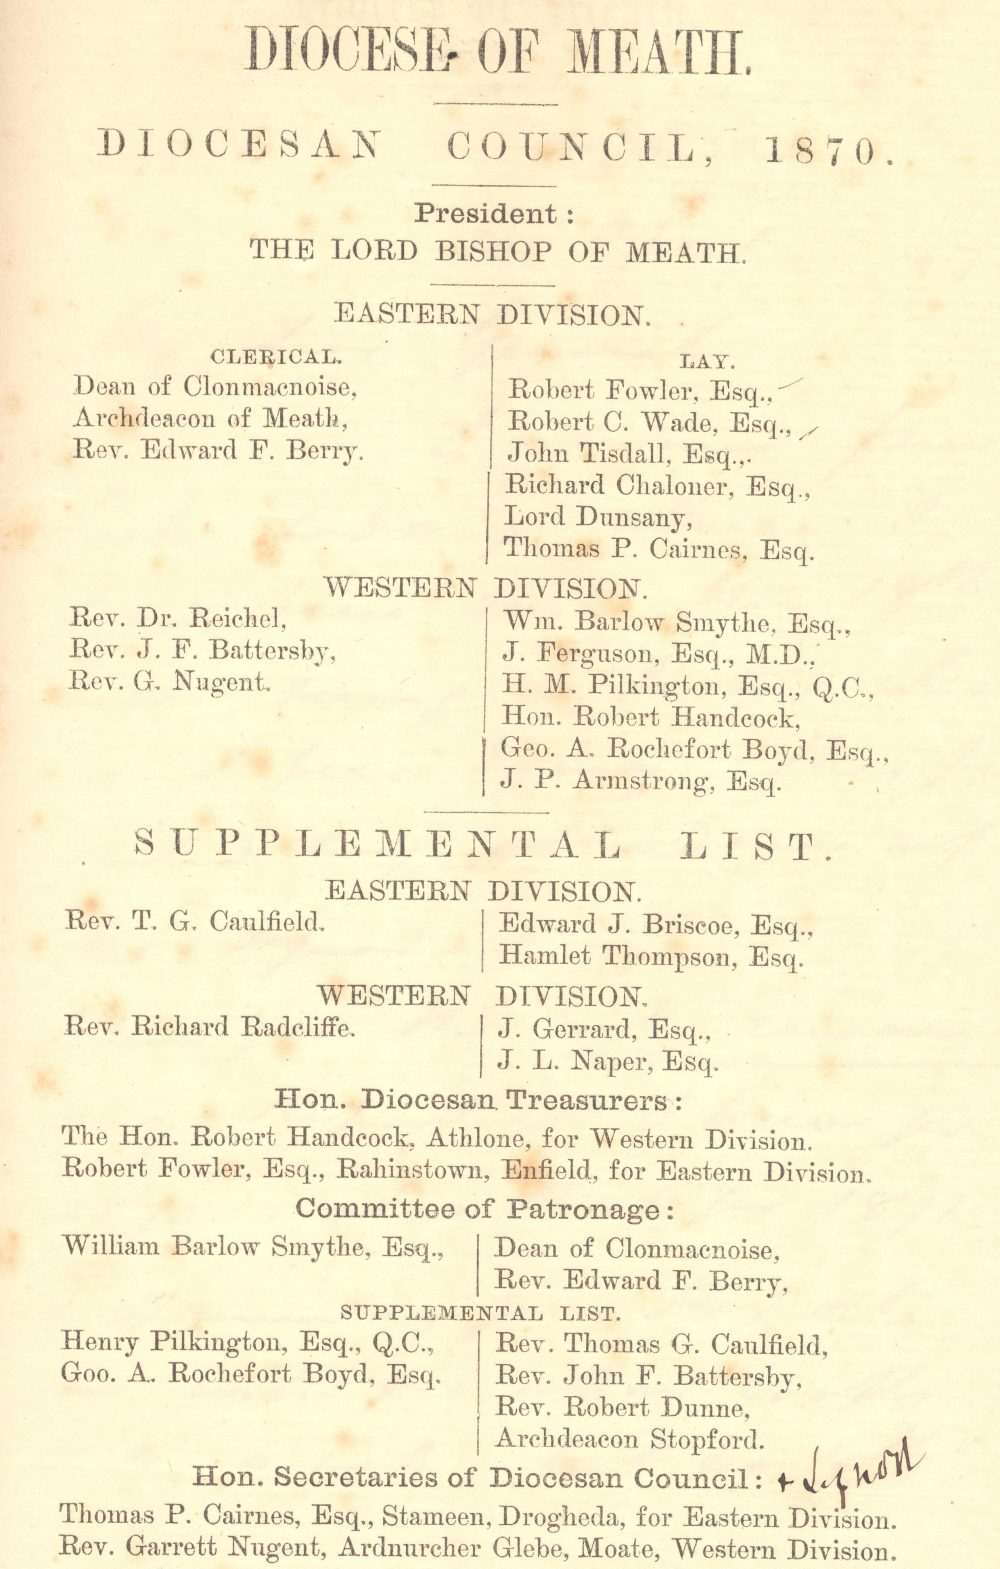 Members of the Diocesan Council in 1870 from RCB Library D7/5/5/9/1